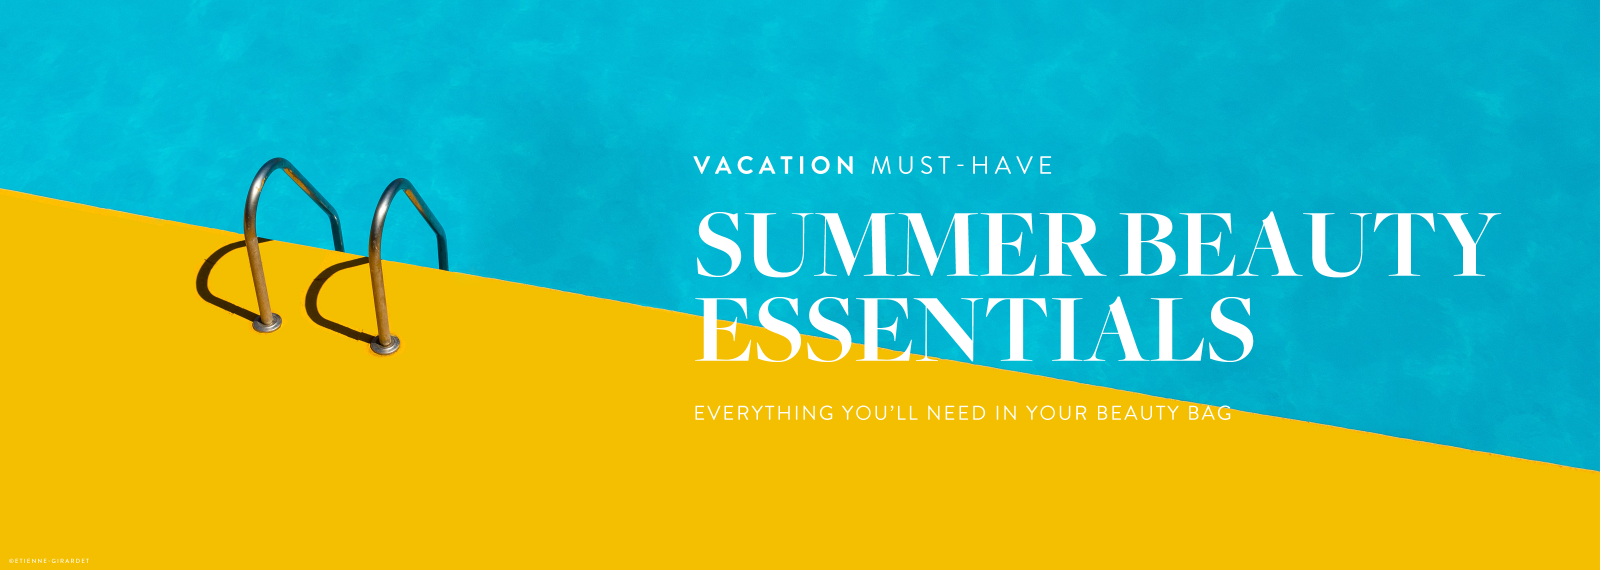 Vacation Must-have - SUMMER BEAUTY ESSENTIALS